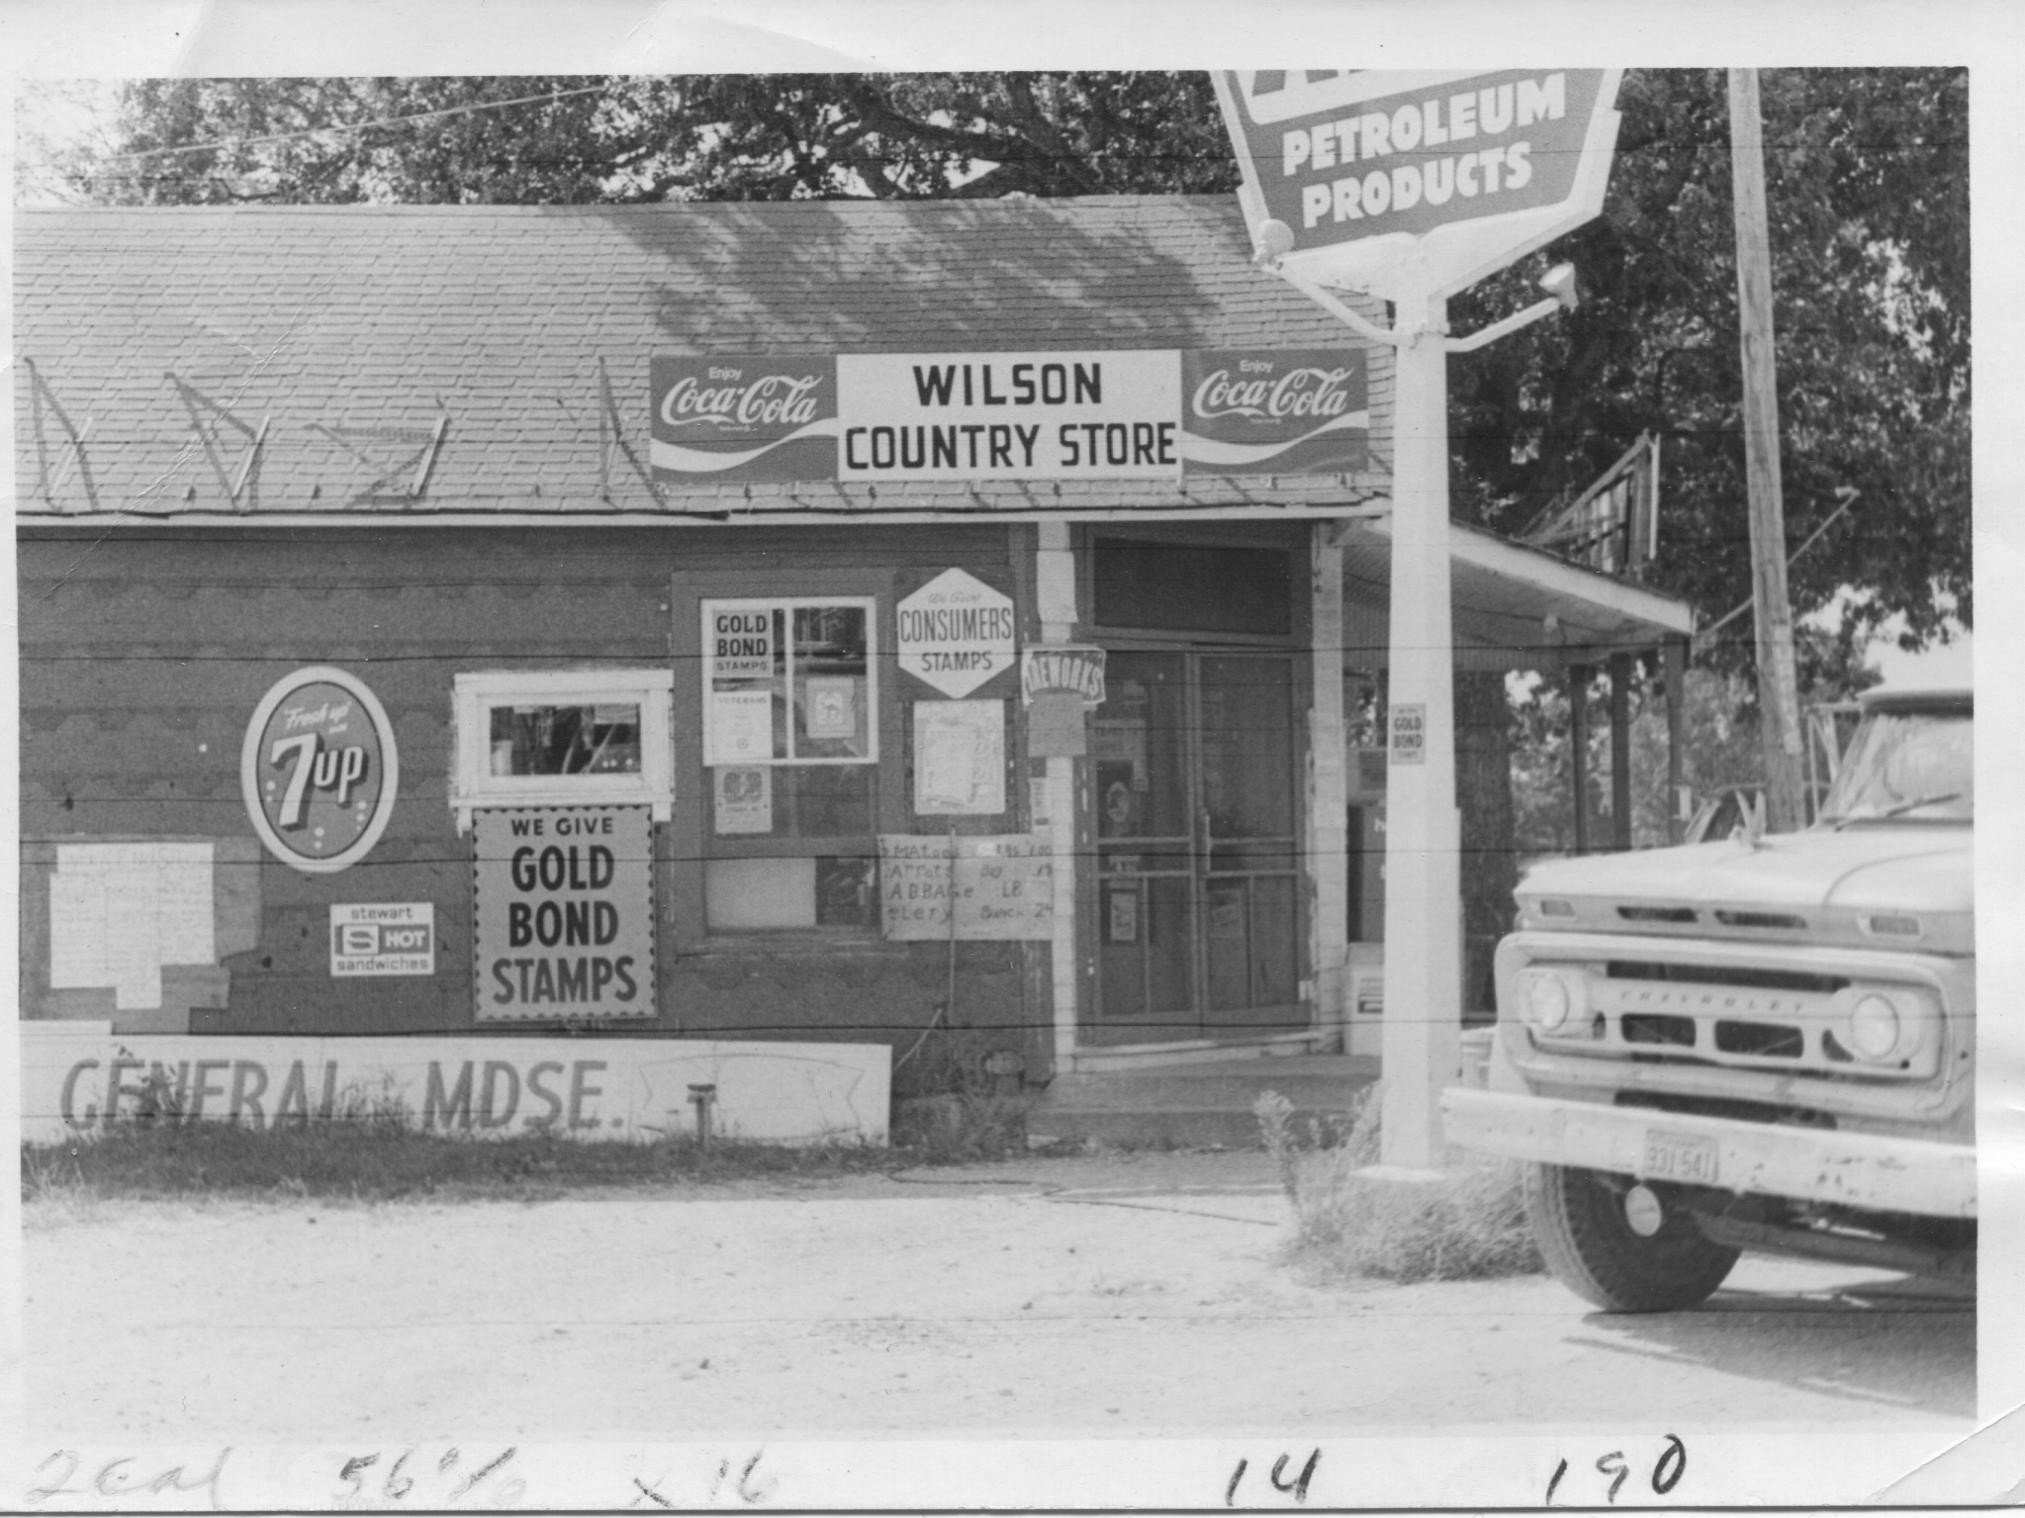 Wilson Country Store